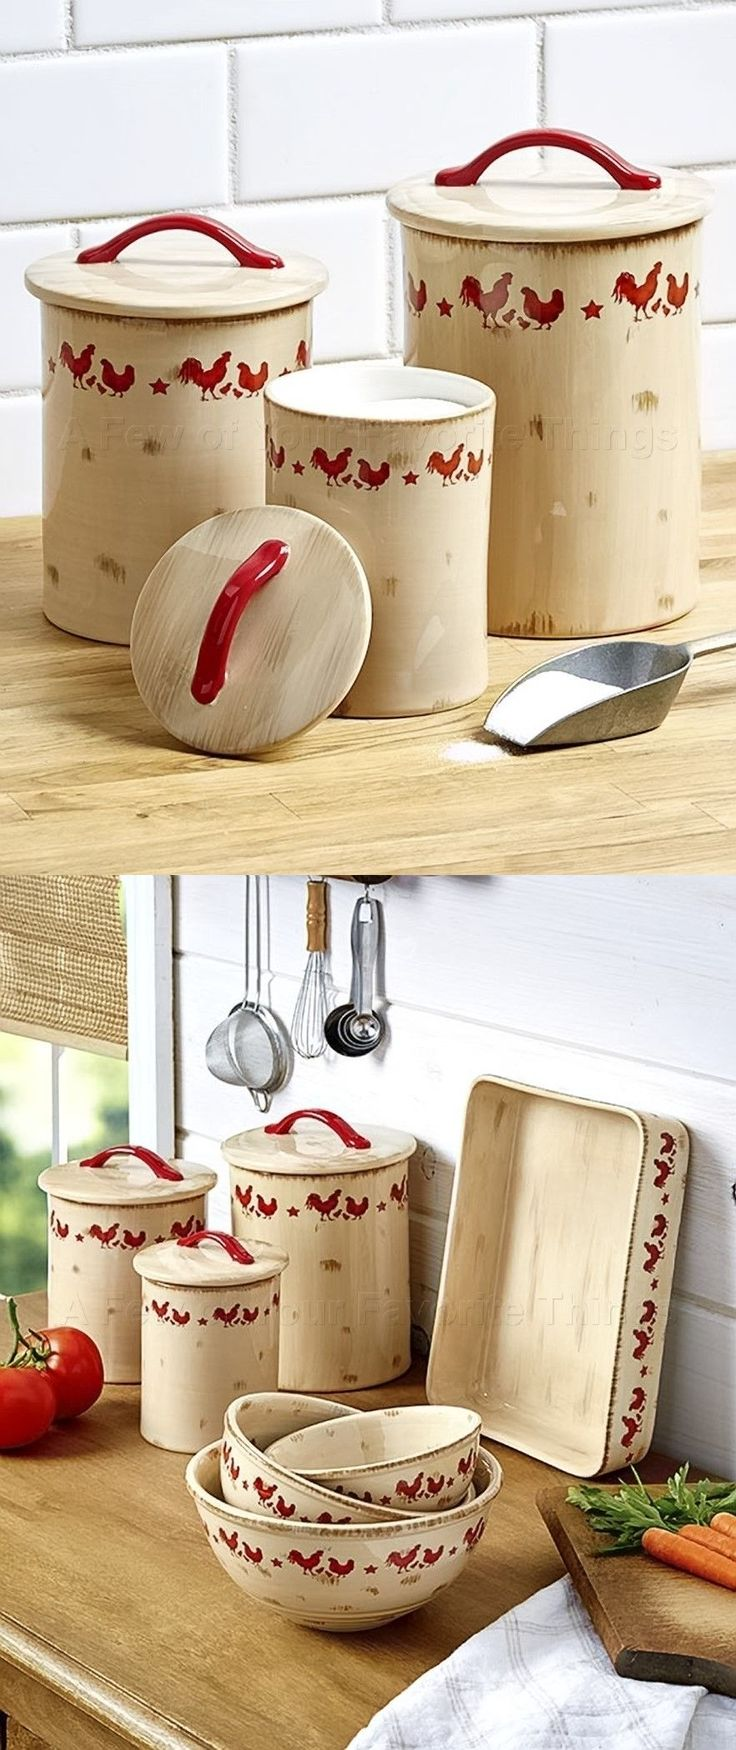 Tuscan old world drake design medium berry kitchen canisters set of 3 - Canisters And Jars 20654 Set Of 3 Canisters Country Red Rooster Distressed Kitchen Home Decor